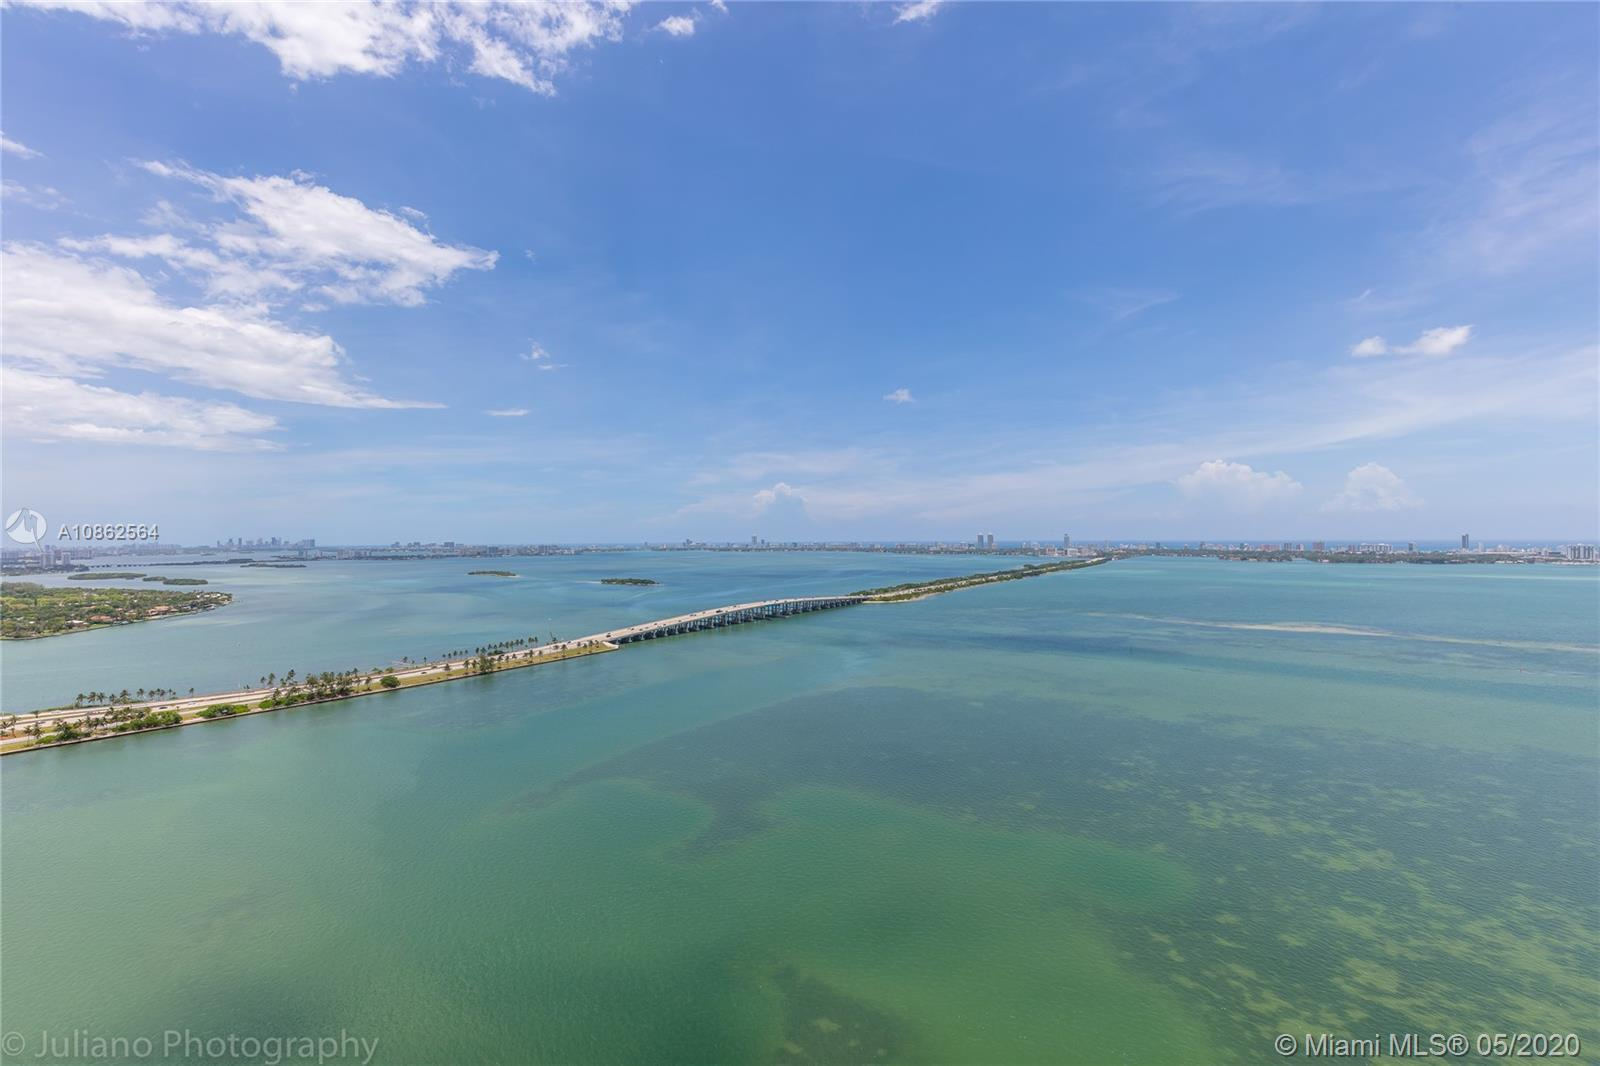 Beautiful 3 bedroom + Den / 4 full bathroom unit at Biscayne Beach! Stunning views of the bay as far